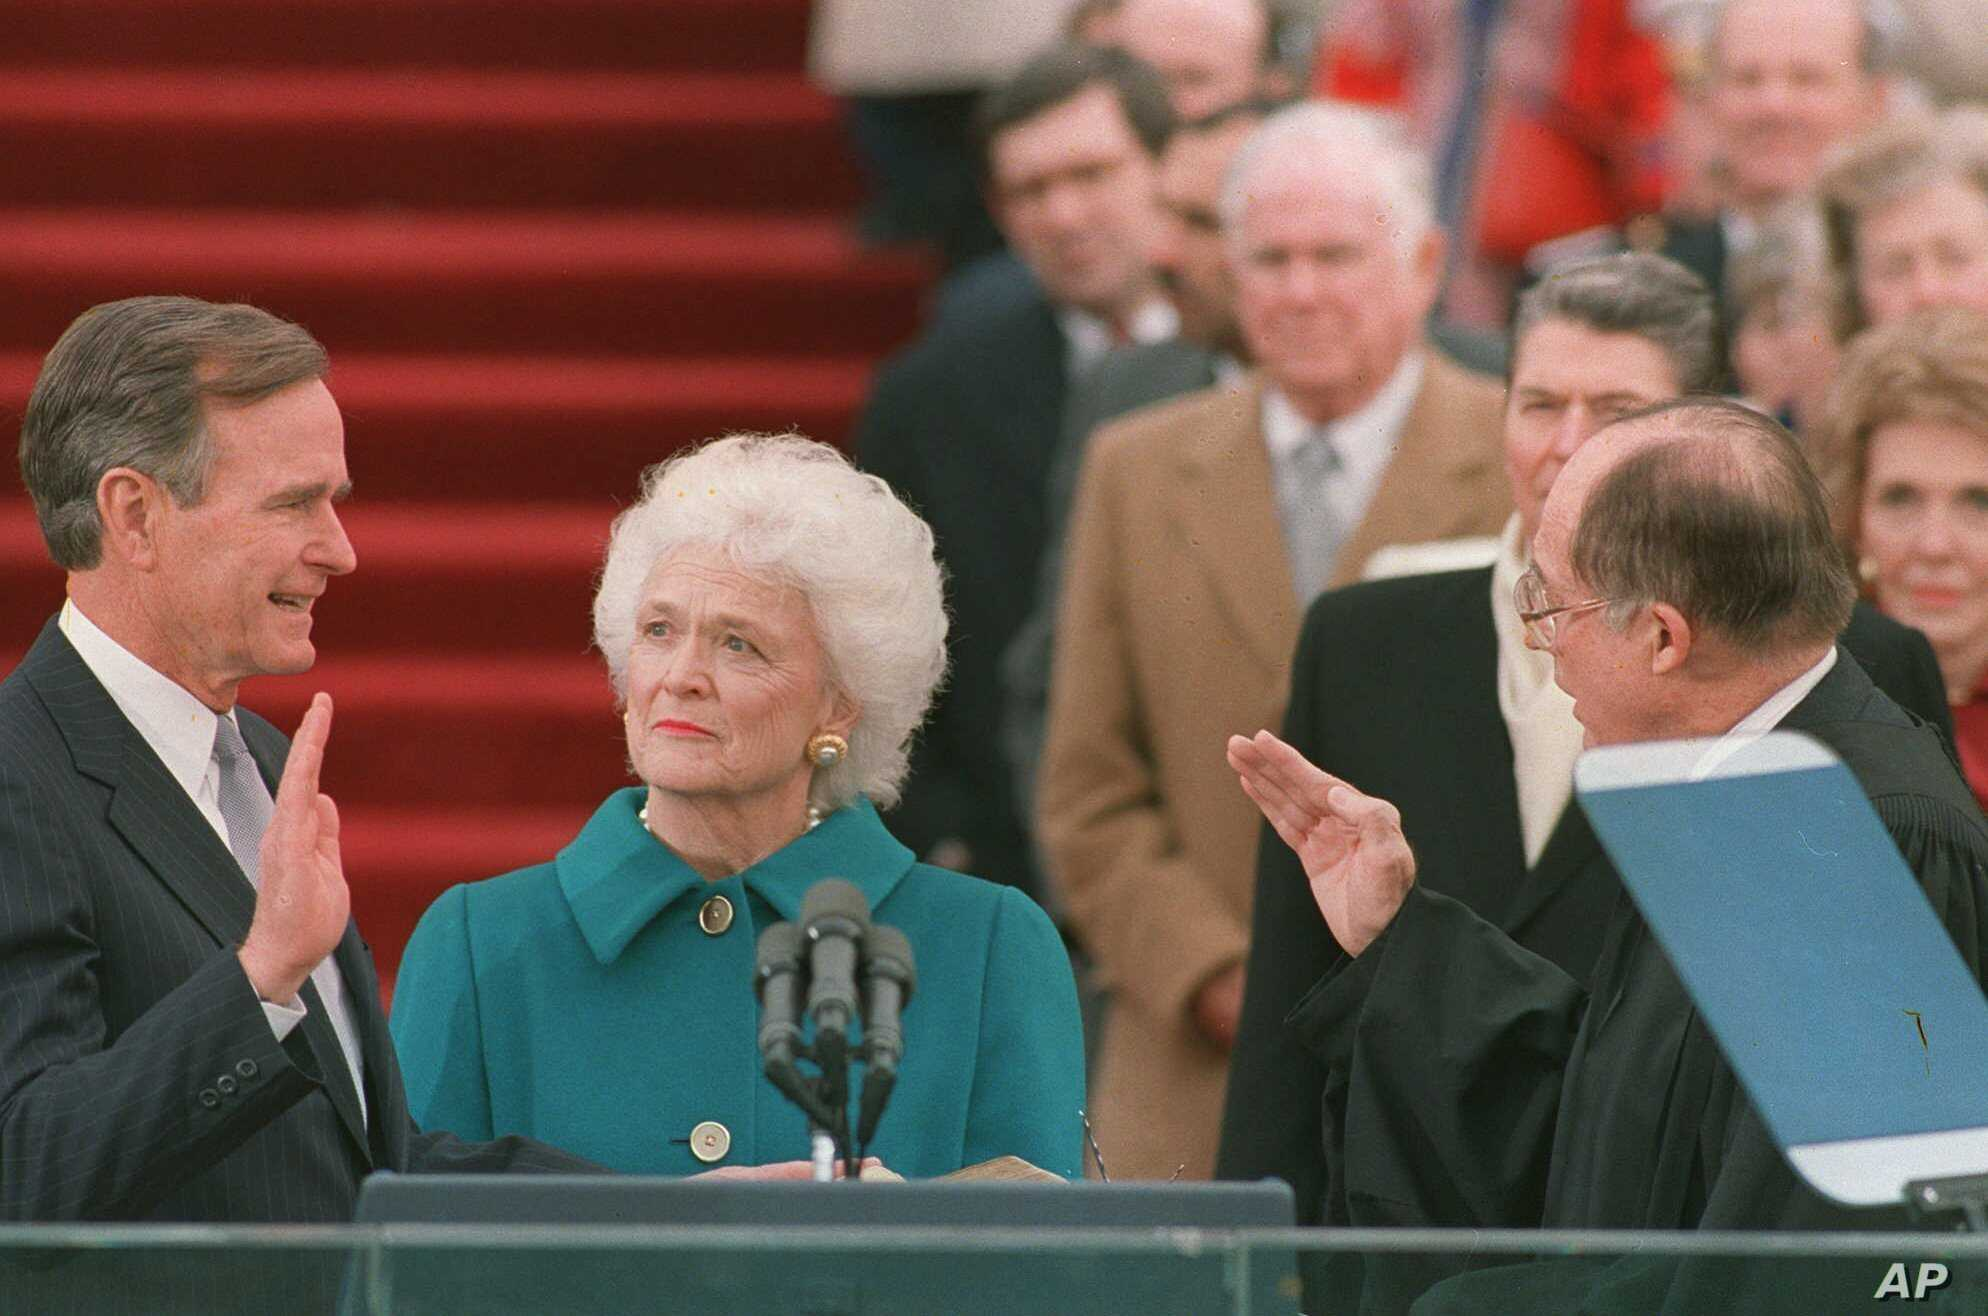 State Funeral Planned for George HW Bush | Voice of America - English